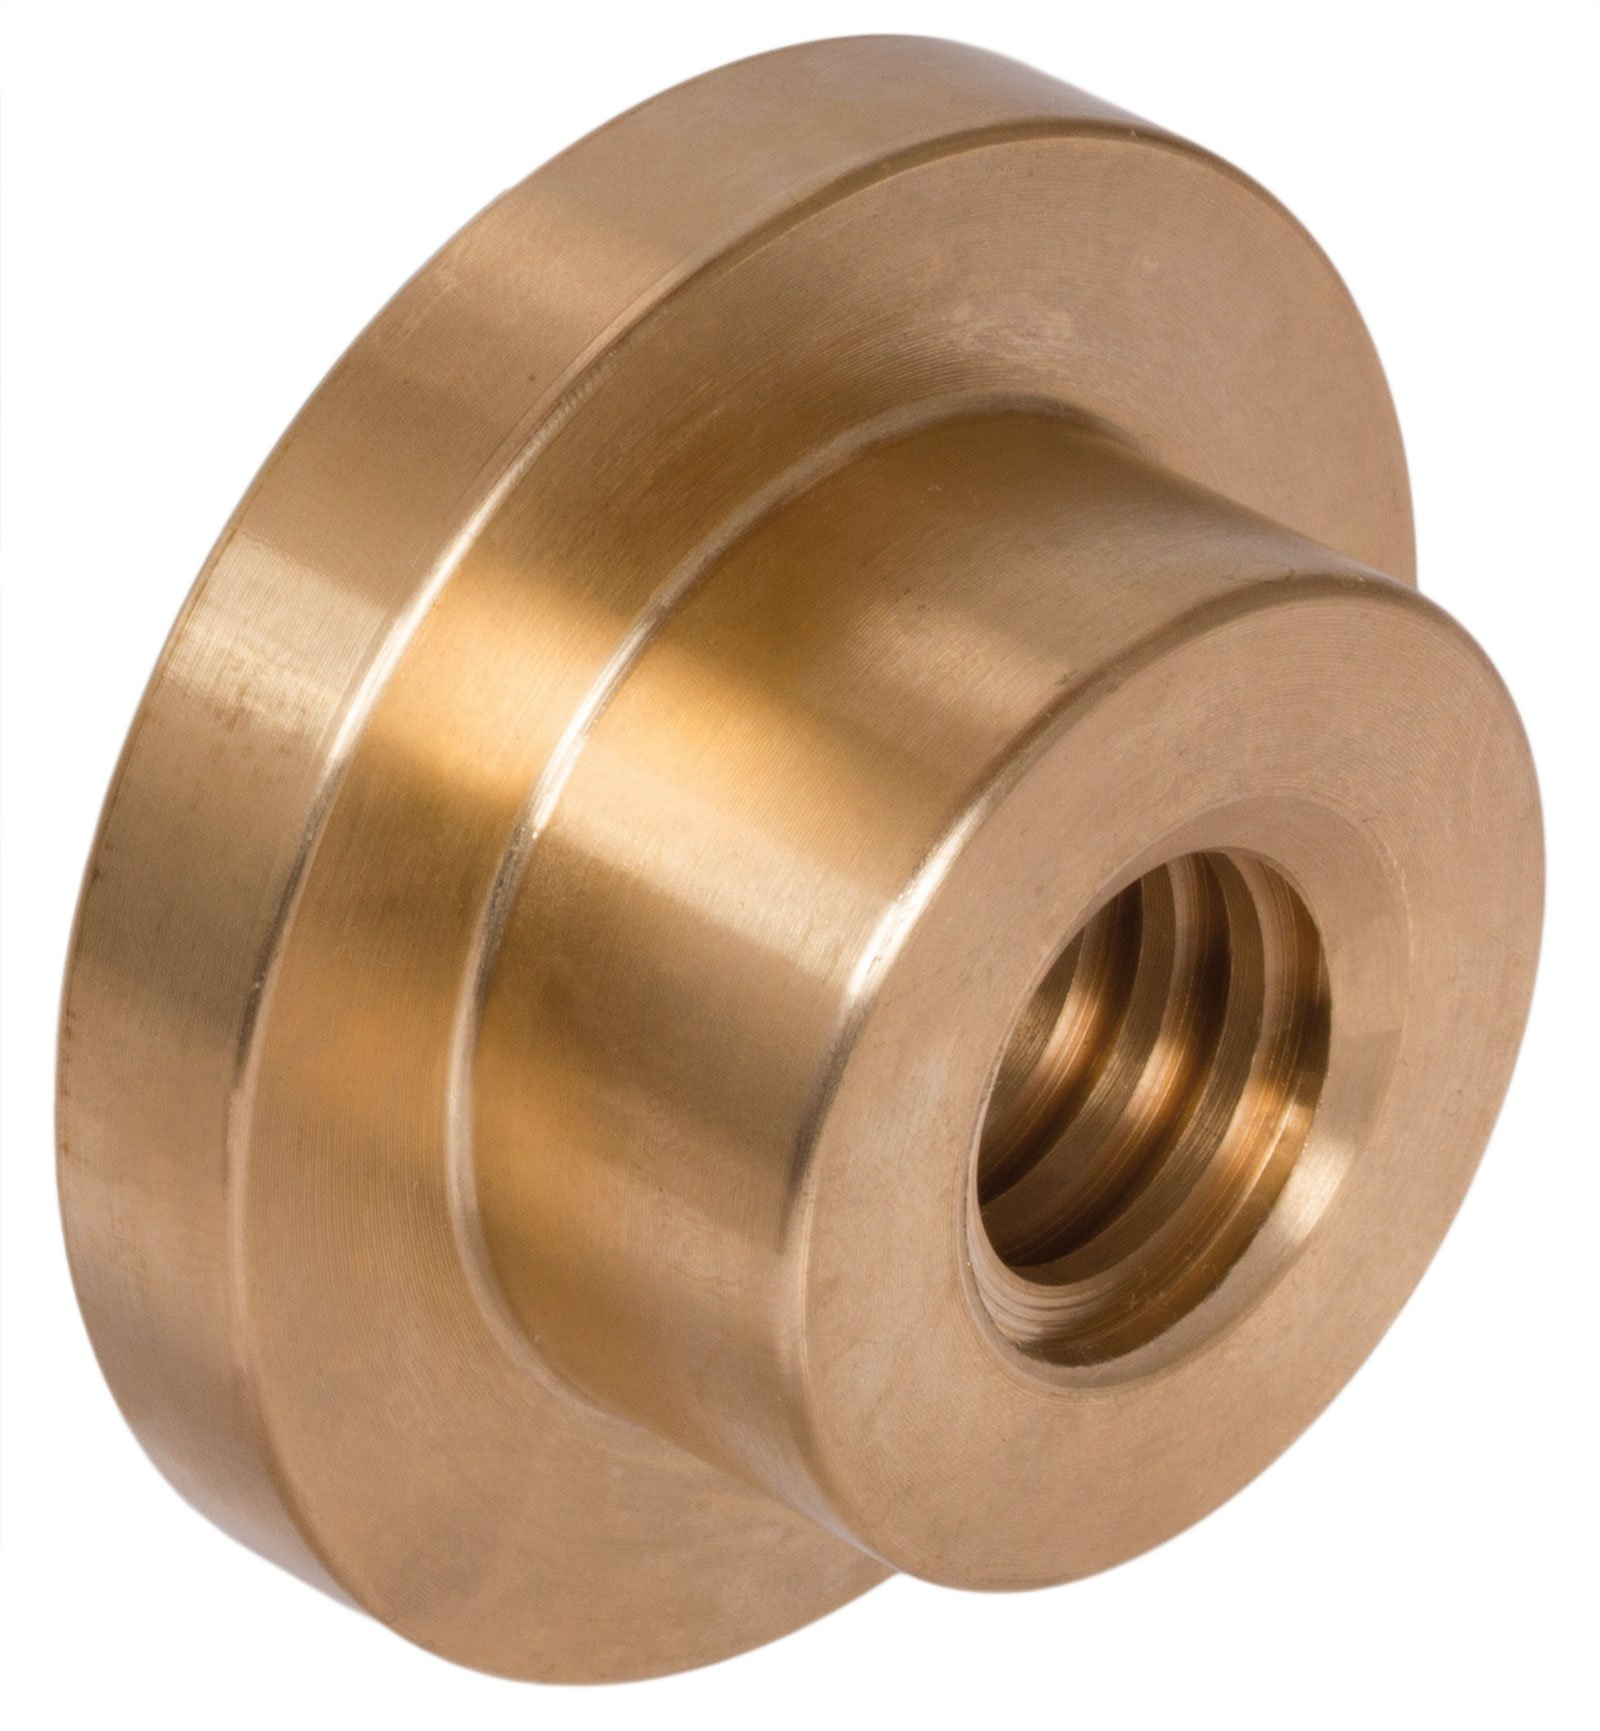 Trapezoidal leadscrew nut with flange Tr.52 x 8 single start left, material red bronze by Maedler